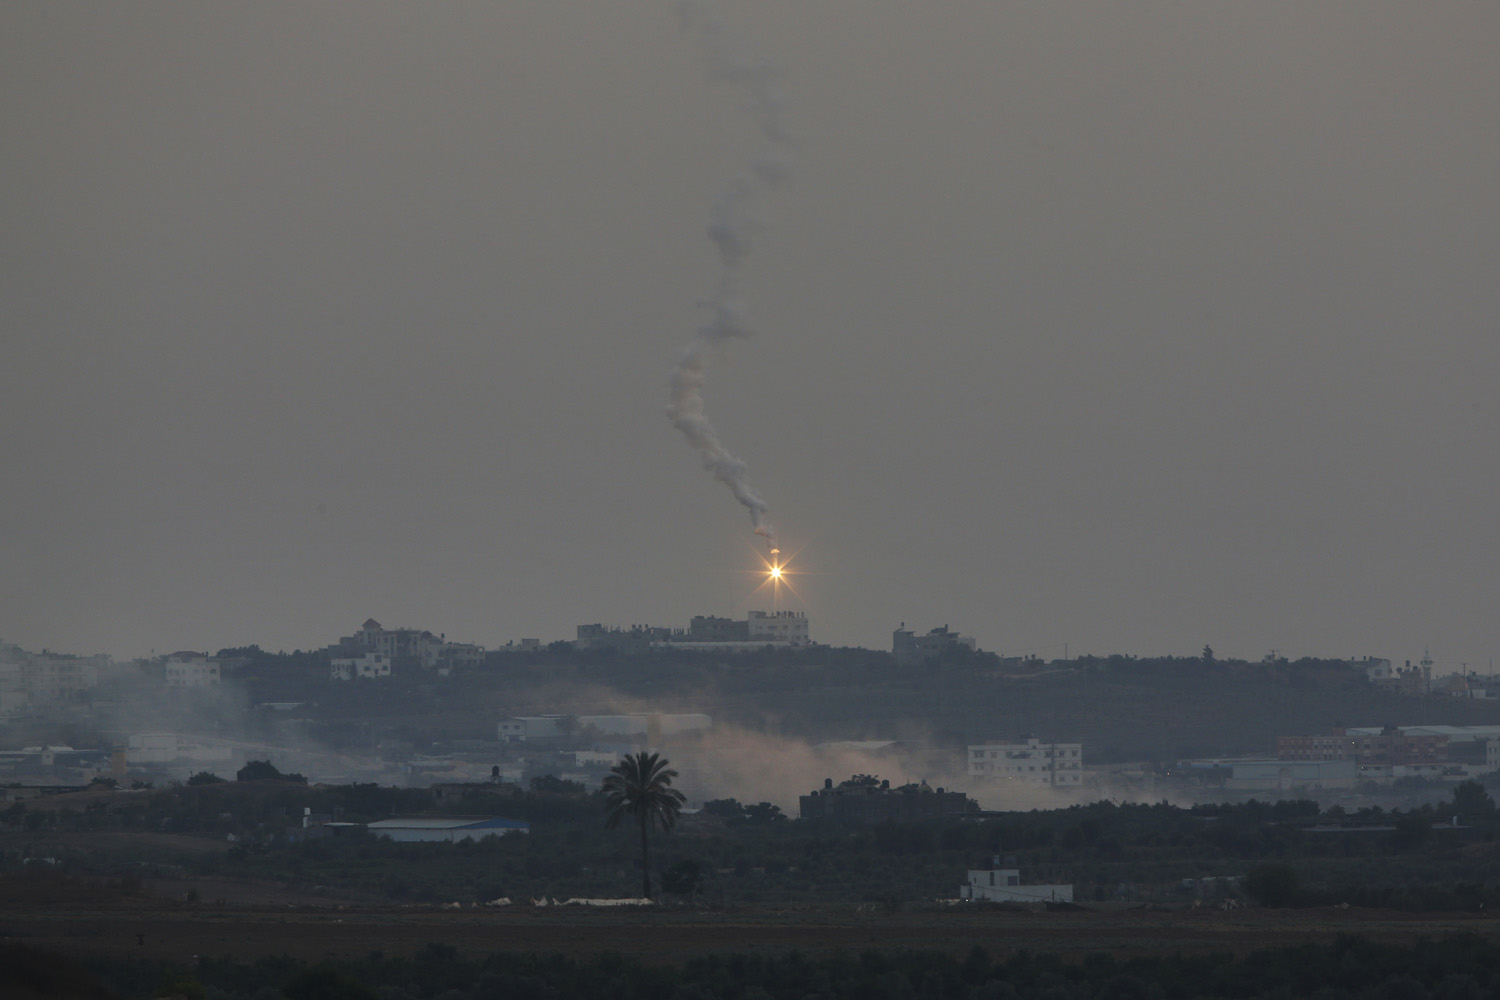 Jul. 12, 2014. A flare launched by Palestinians militants falls over Gaza, as seen from the Israel-Gaza border.